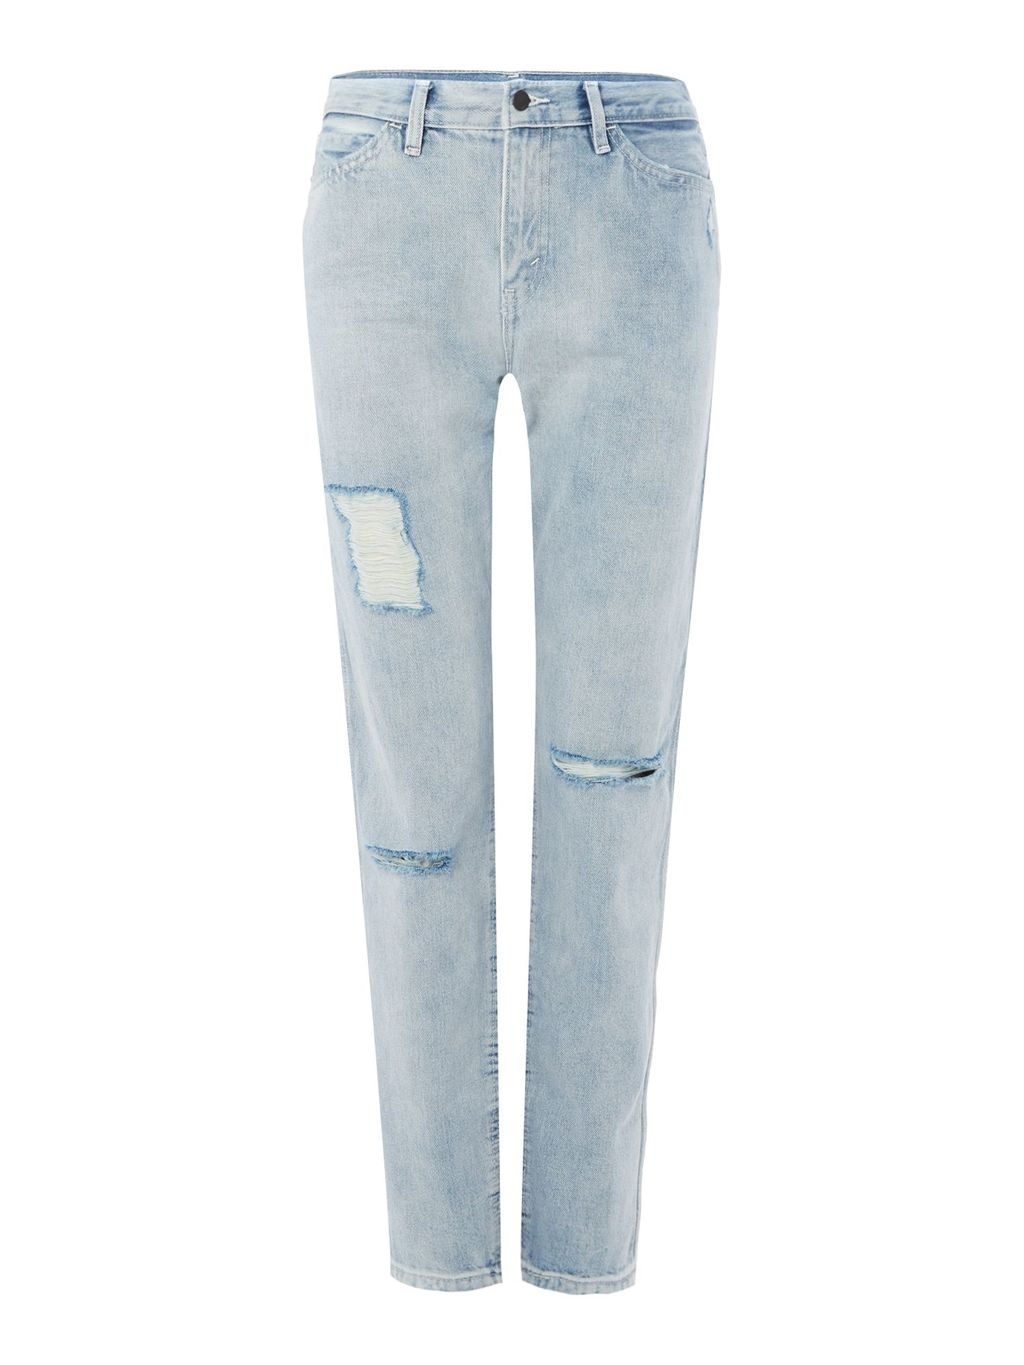 The Renegade Line 8 In Transit Fade, Denim Light Wash - style: straight leg; length: standard; pattern: plain; waist: high rise; pocket detail: traditional 5 pocket; predominant colour: pale blue; occasions: casual; fibres: cotton - stretch; texture group: denim; pattern type: fabric; jeans detail: rips; season: s/s 2016; wardrobe: basic